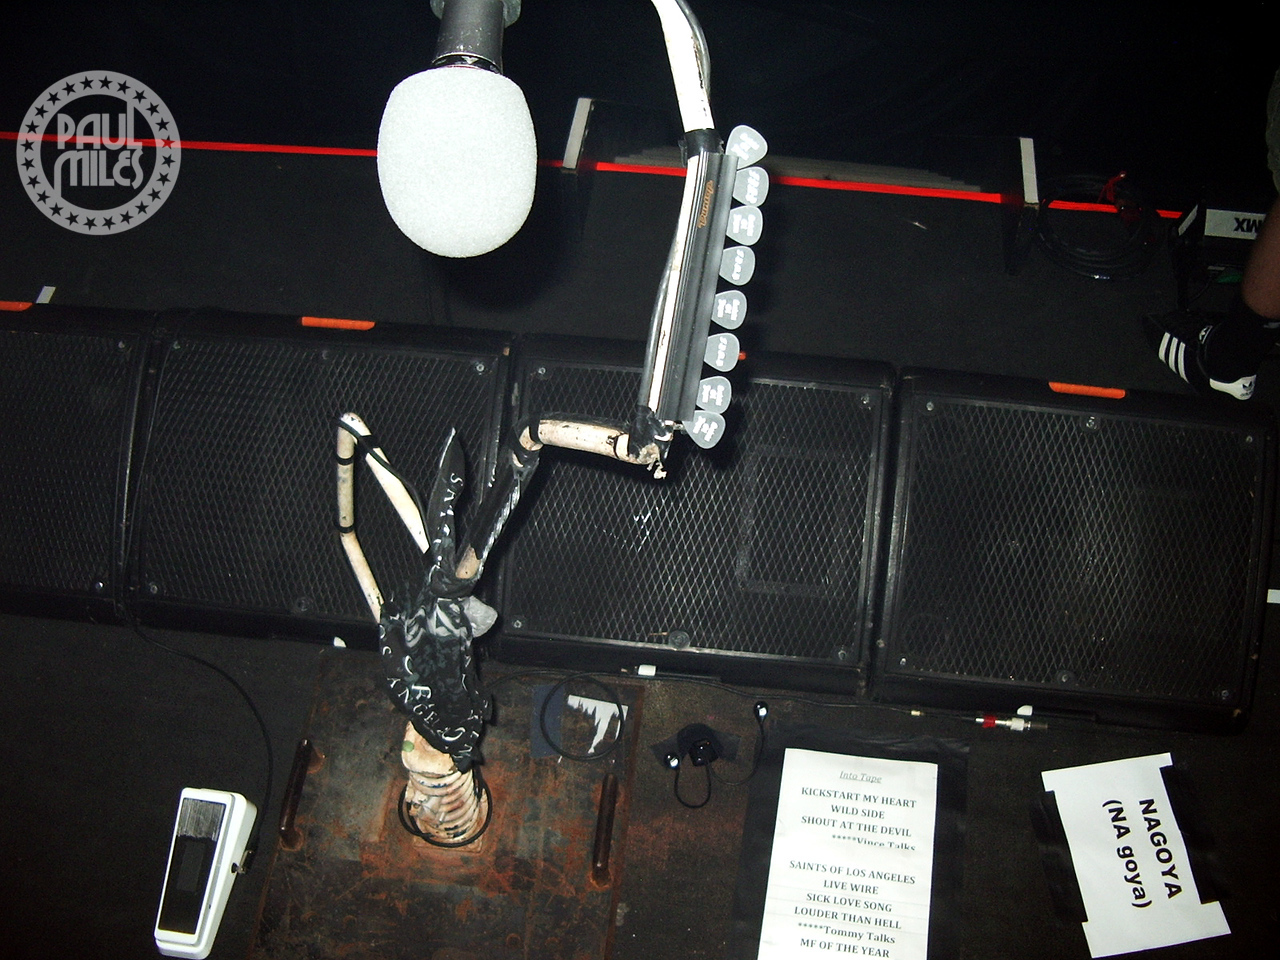 The on-stage set-up of Nikki Sixx before Motley Crue's show at Zepp, Nagoya, Japan in October 2008.